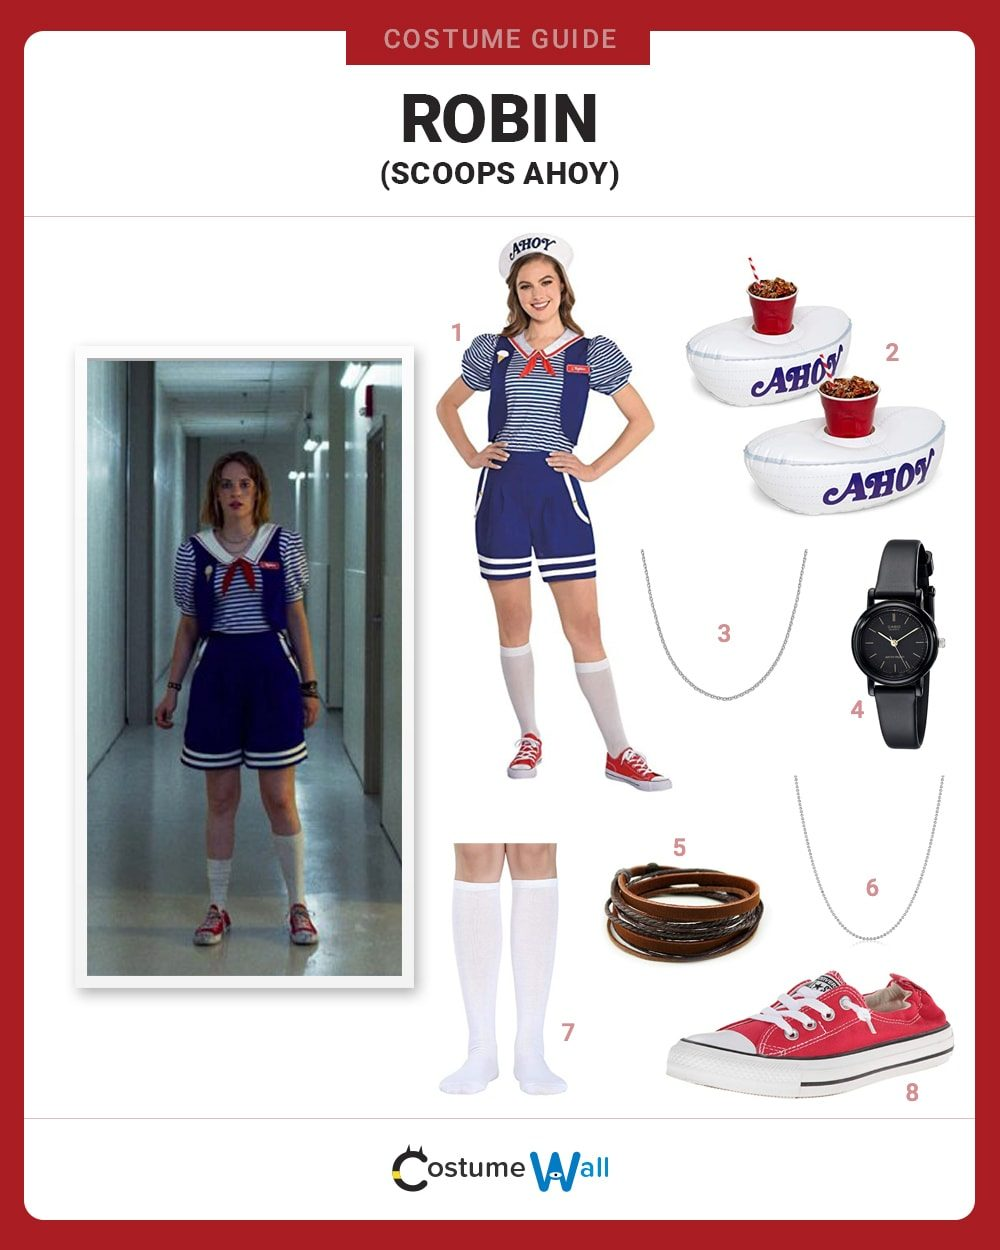 Robin Buckley (Scoops Ahoy) Costume Guide